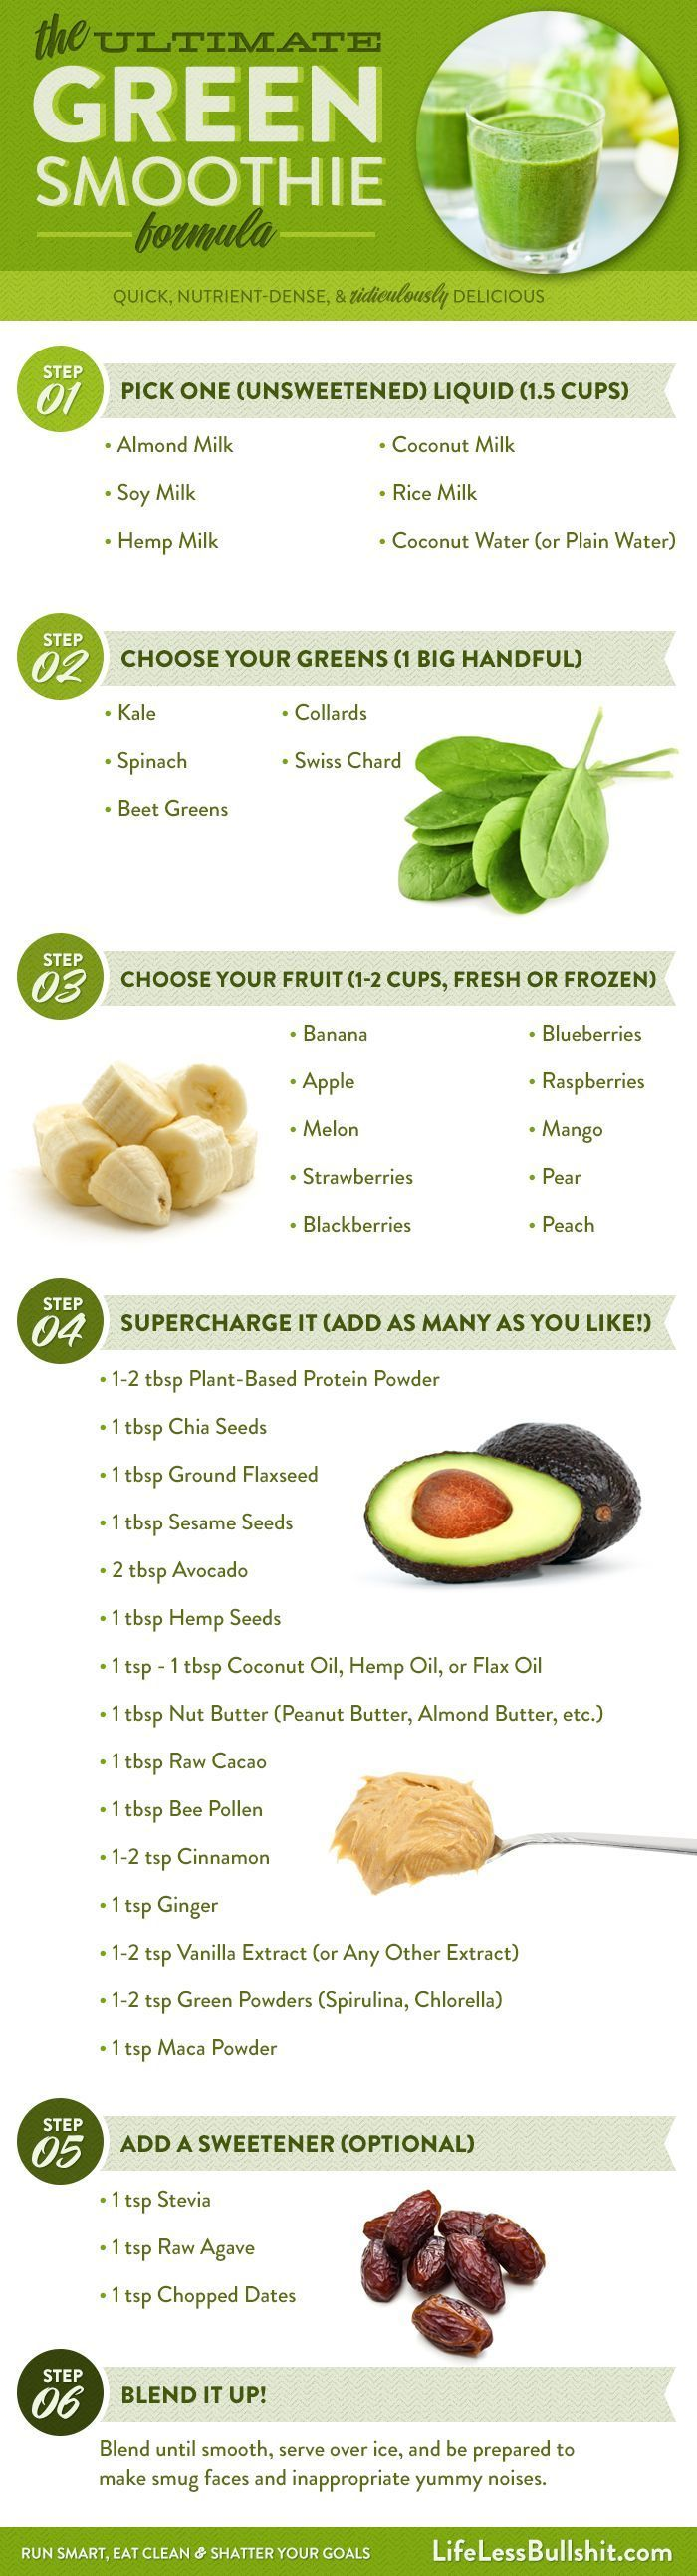 ultimate green-smoothie-formula Weight Loss